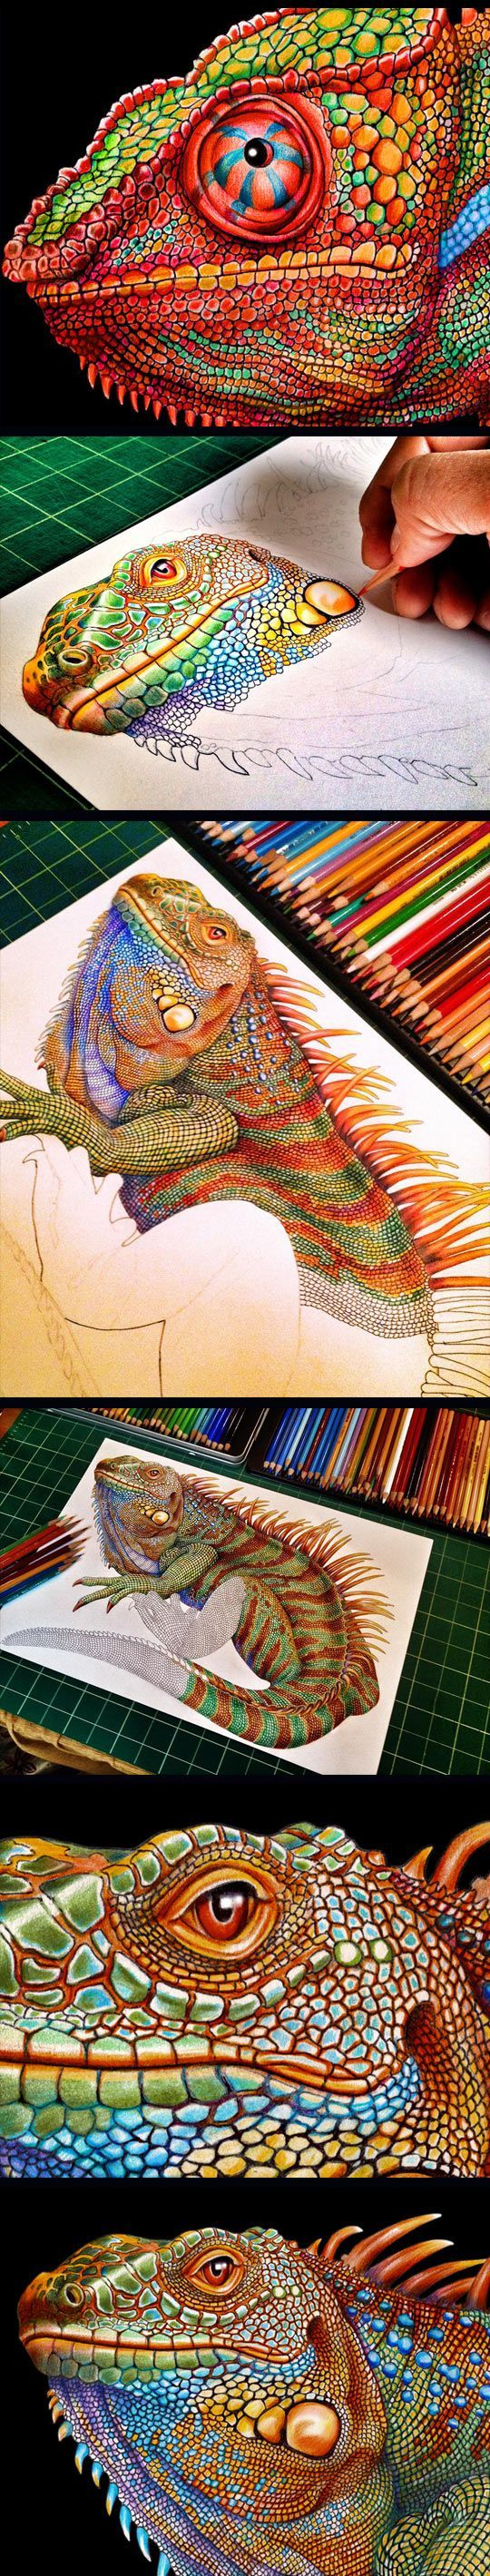 The Most Detailed Drawing Of A Chameleon and lizard